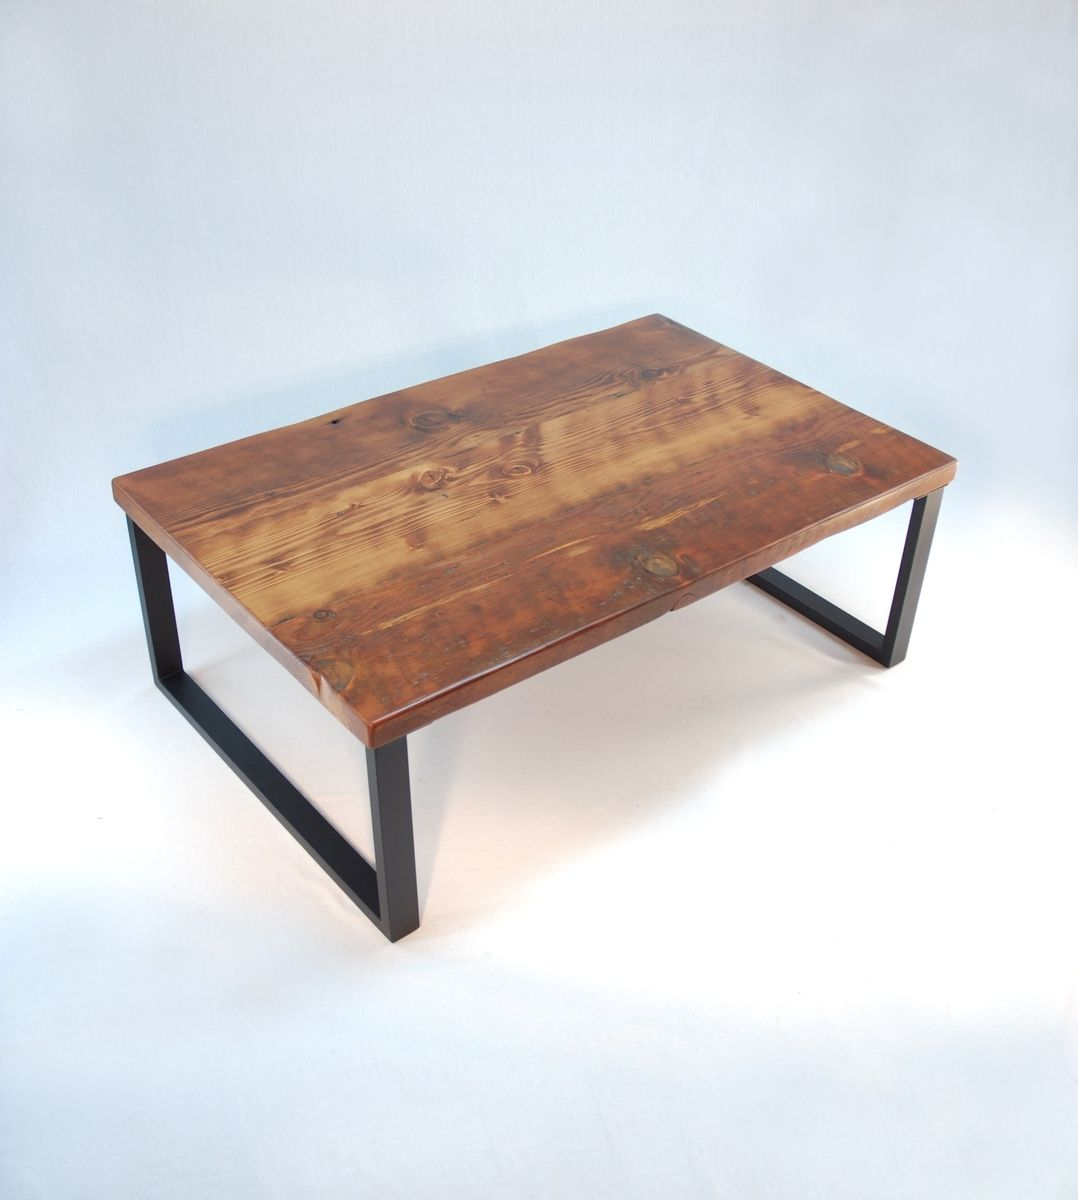 Handmade redmond rustic modern coffee table by jonathan january Coffee tables rustic